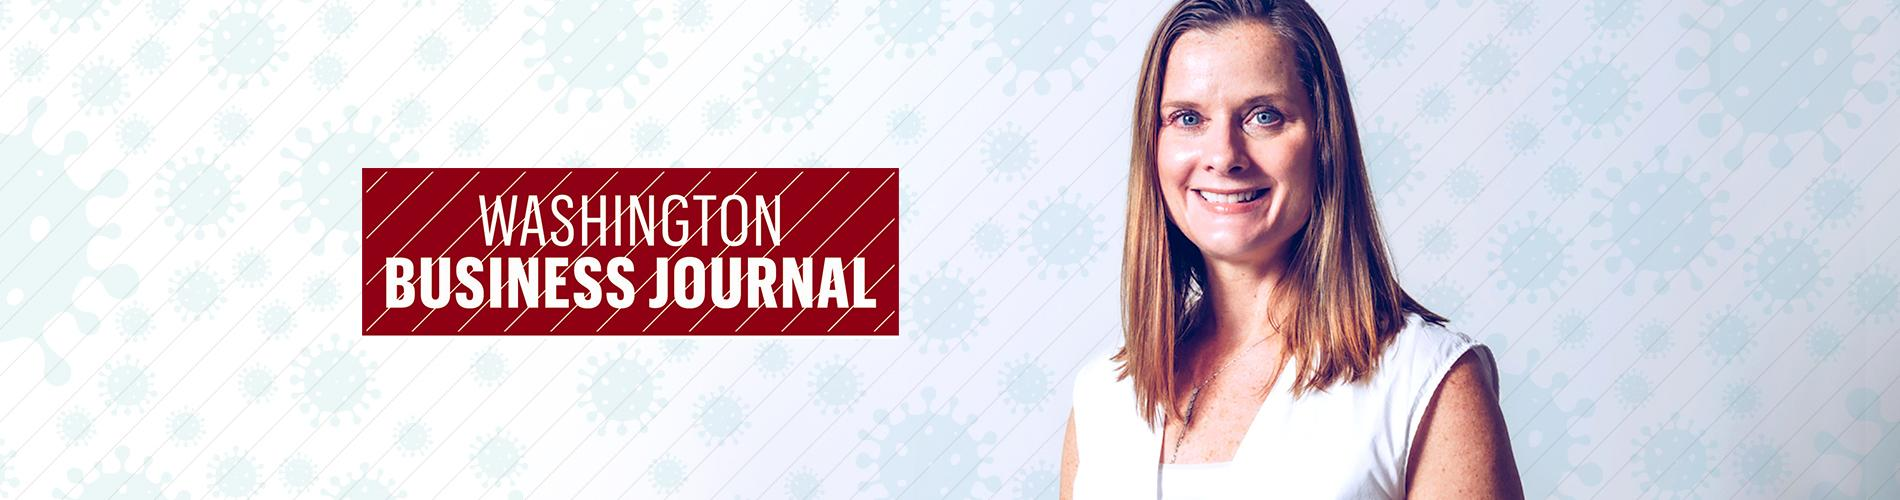 RP3's CEO Beth Johnson Interviewed About Marketing During Coronavirus